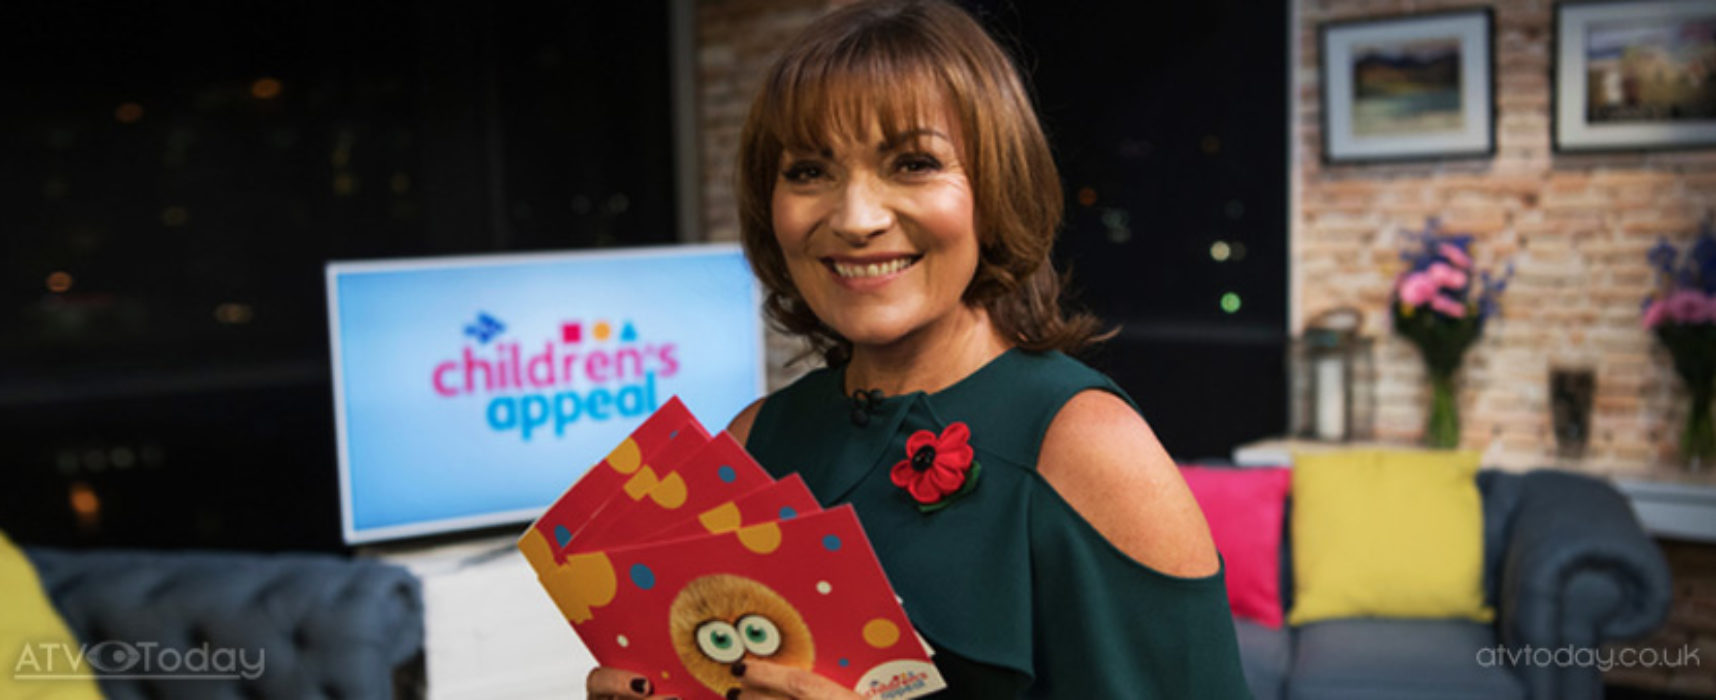 Lorraine Kelly joins STV for game show